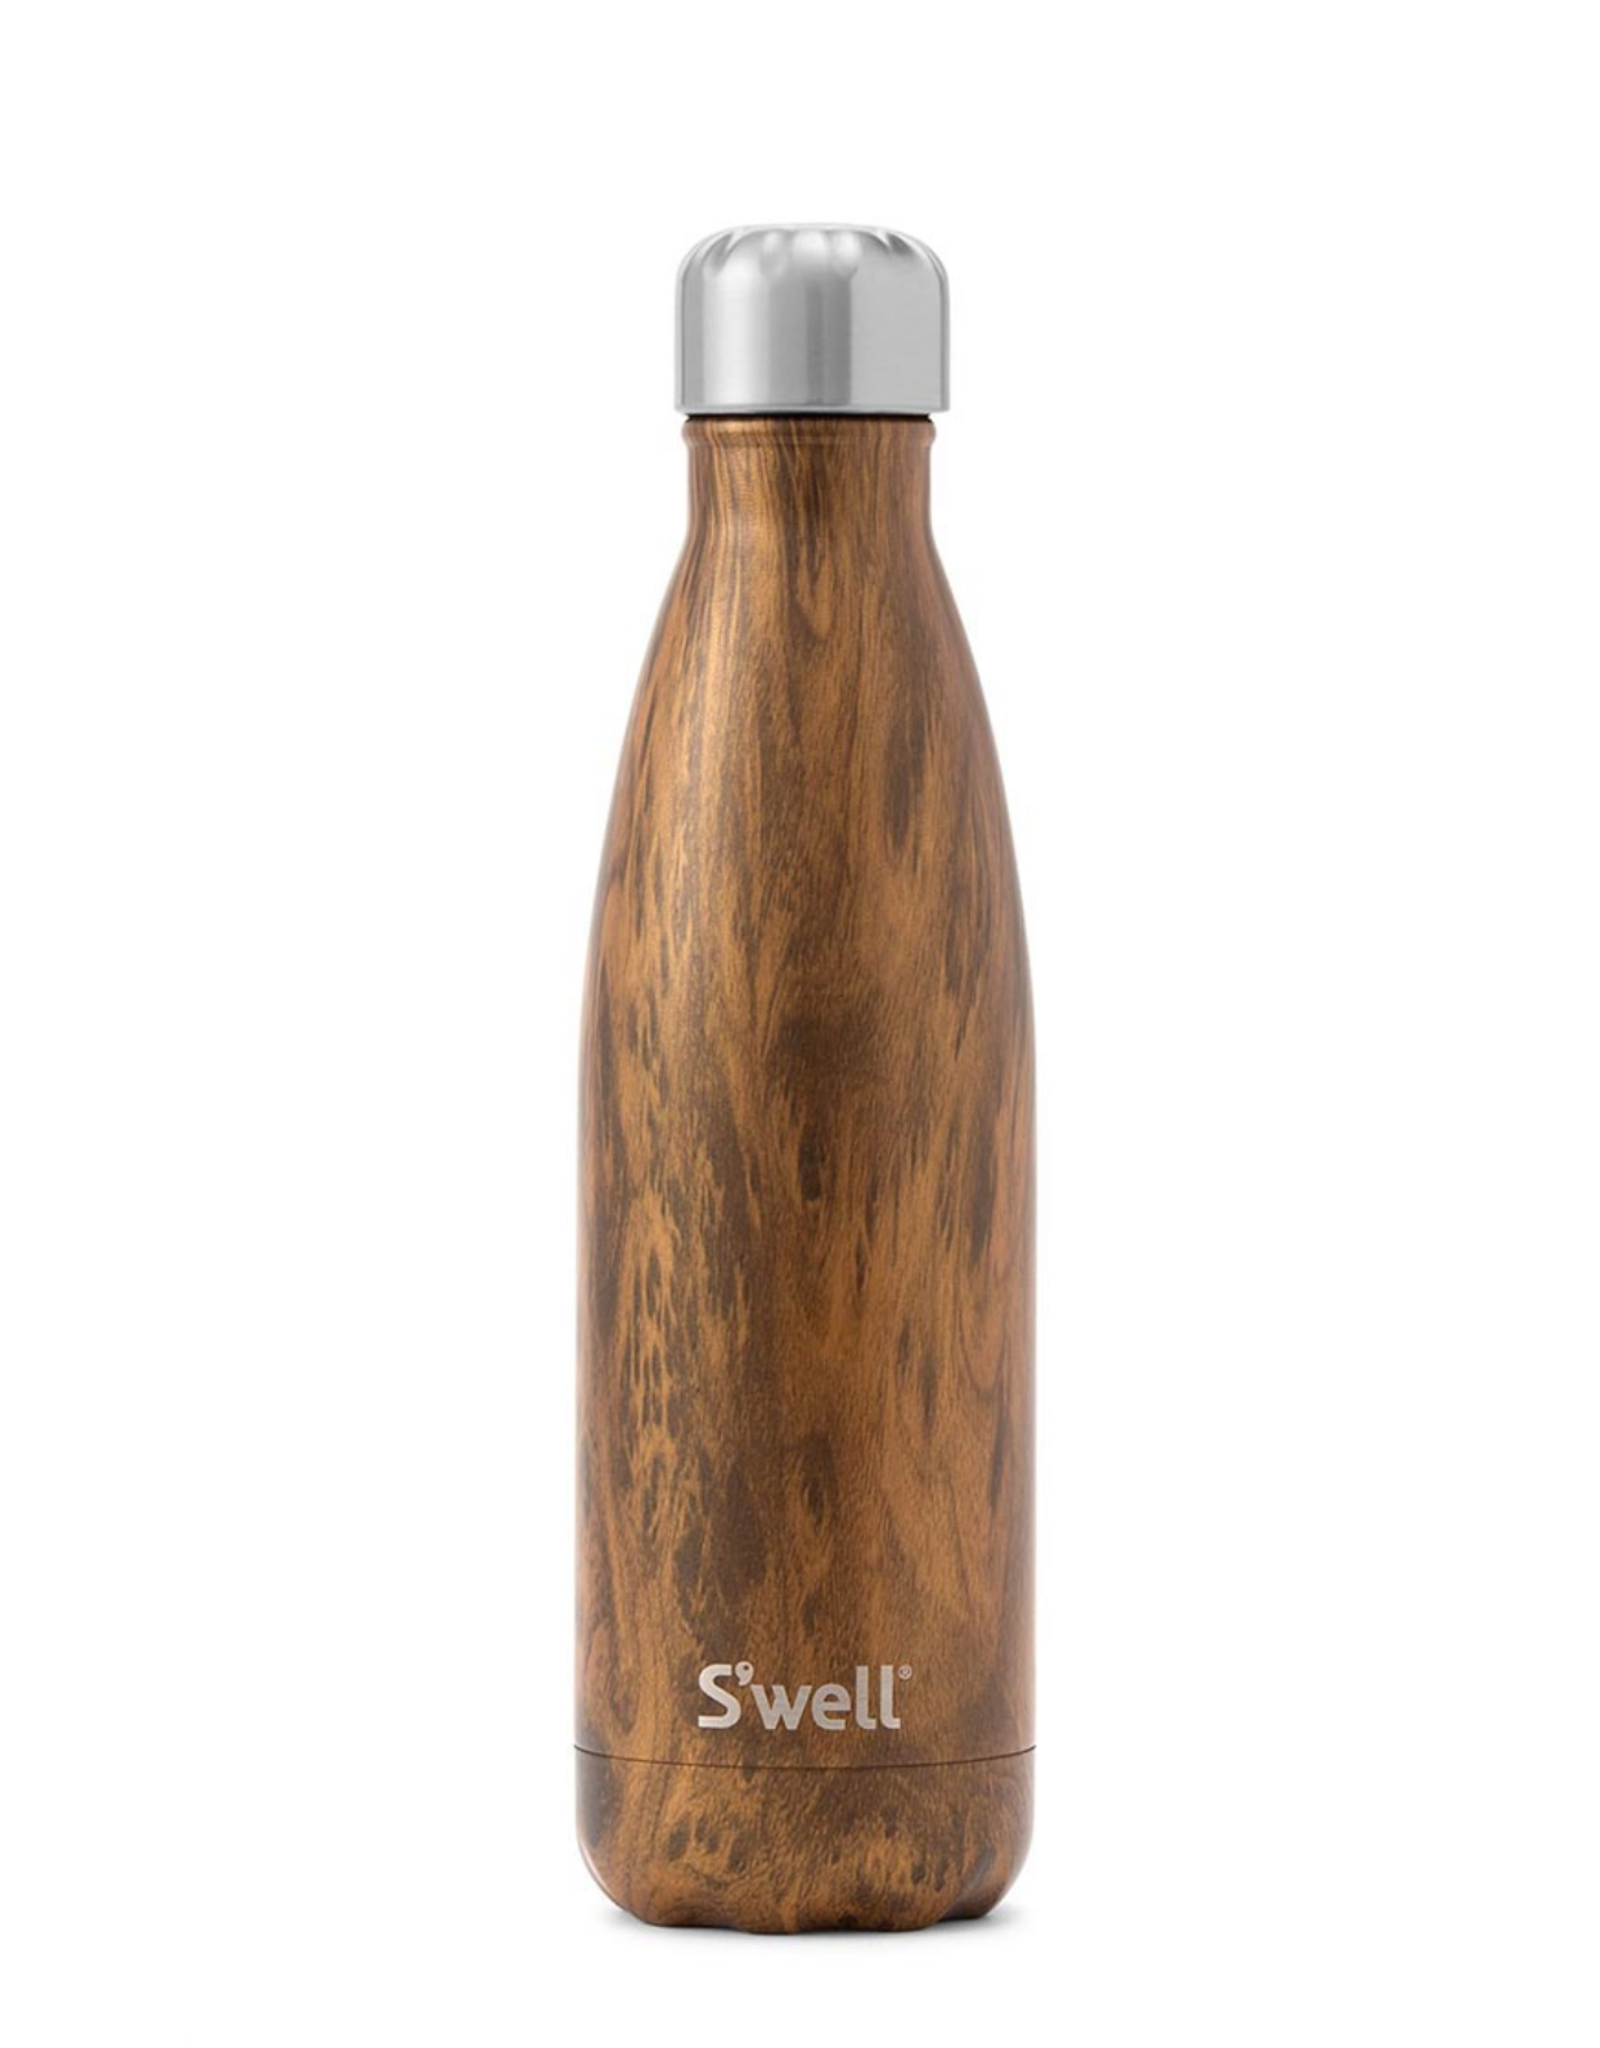 S'well S'well - 17oz Bottle - Teakwood